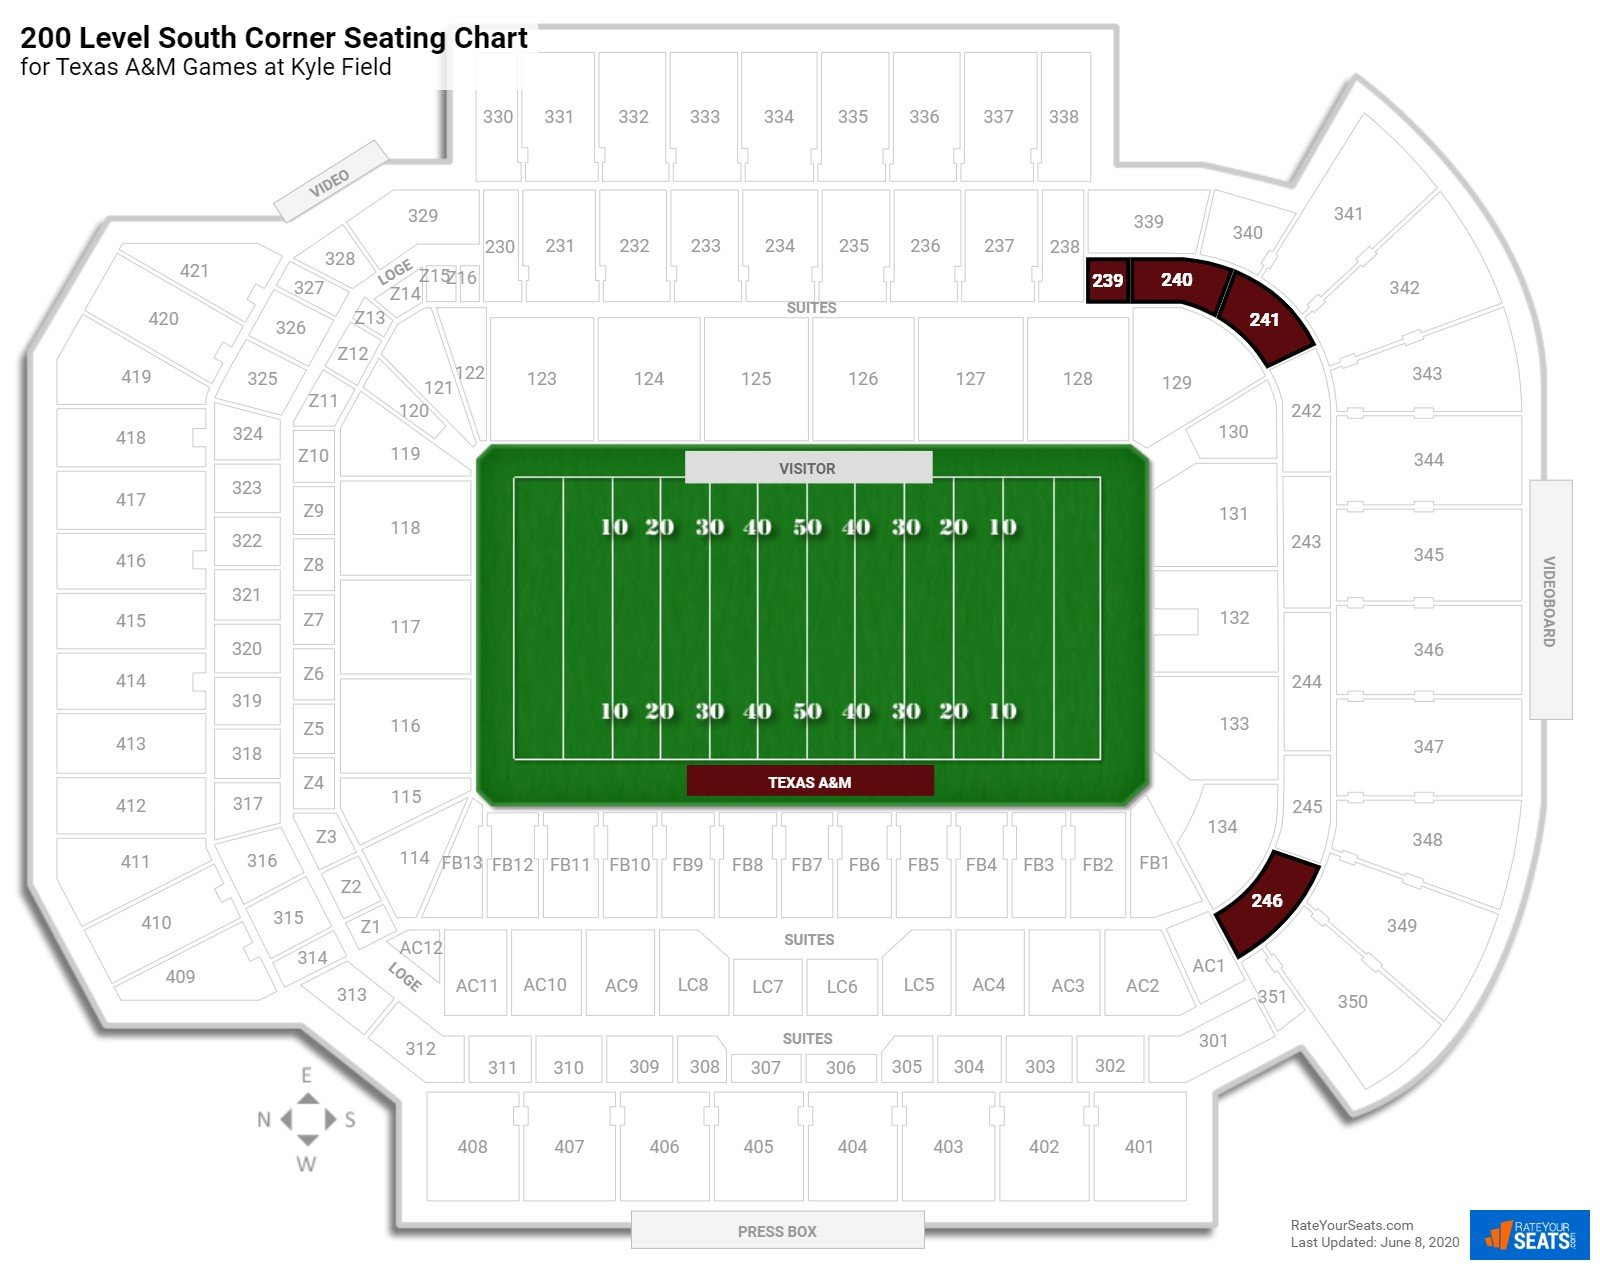 Kyle Field 200 Level South Corner seating chart